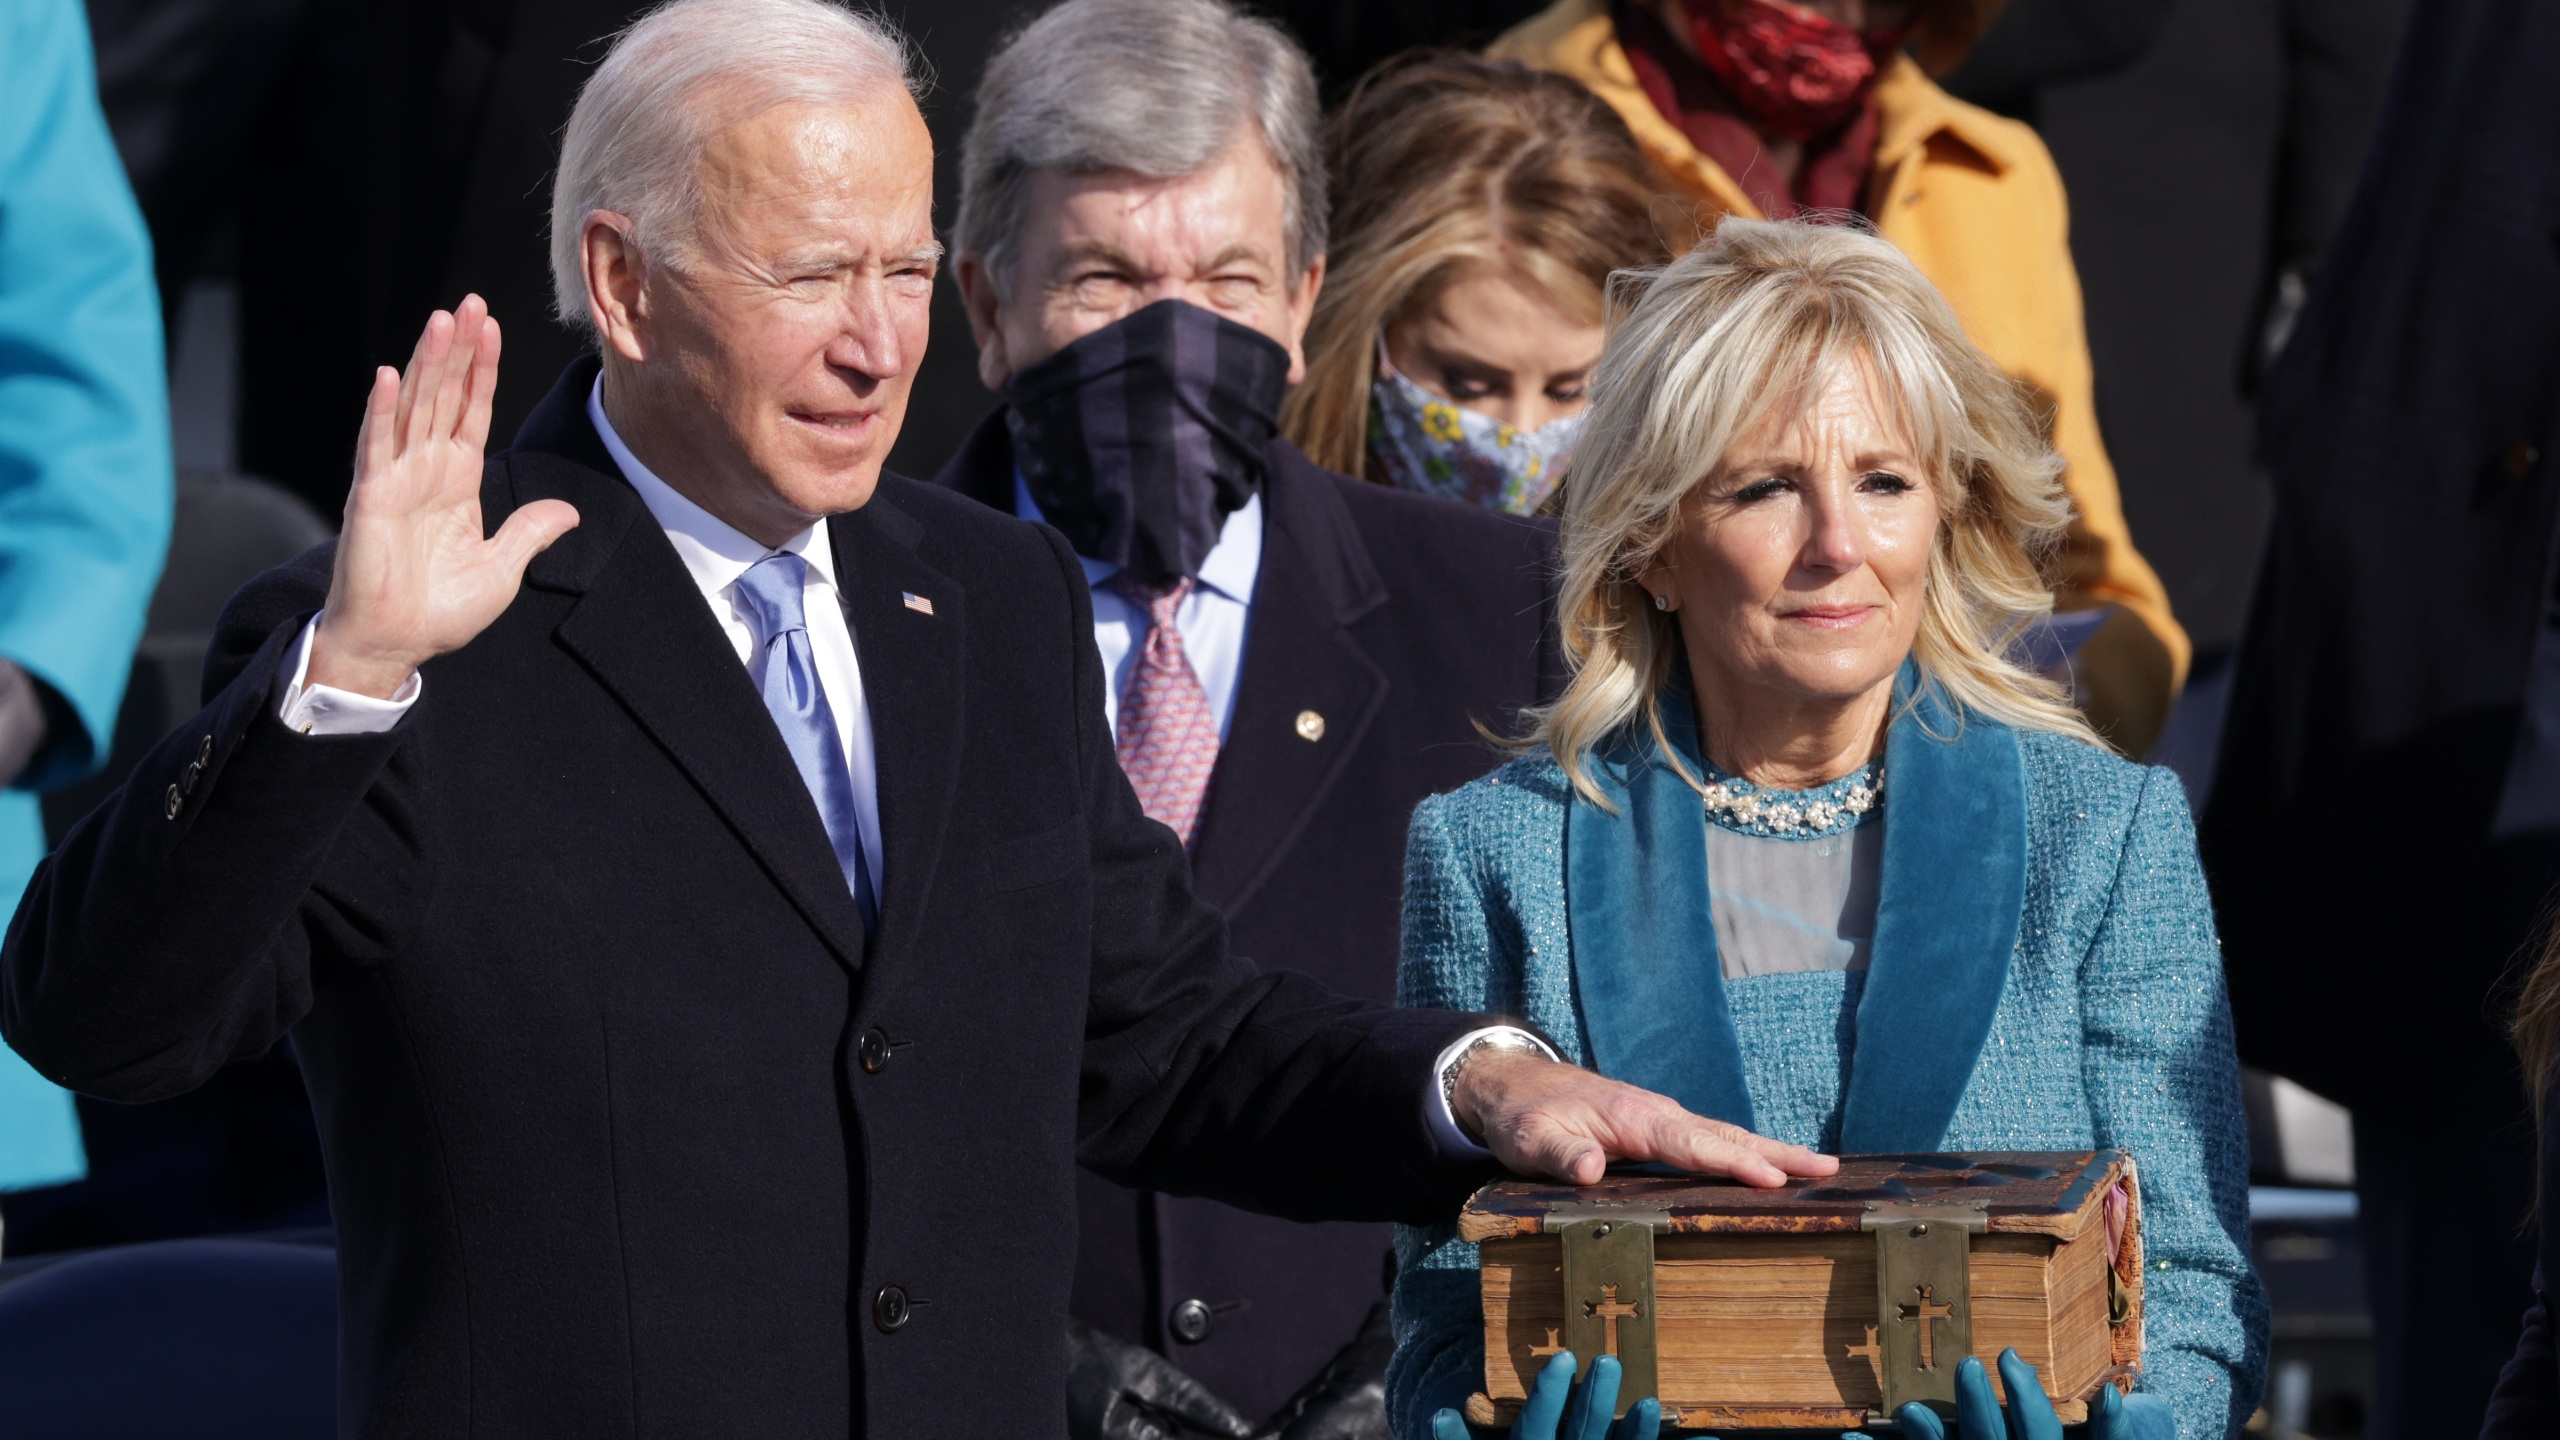 WASHINGTON, DC - JANUARY 20: Joe Biden is sworn in as U.S. President during his inauguration on the West Front of the U.S. Capitol on January 20, 2021 in Washington, DC. During today's inauguration ceremony Joe Biden becomes the 46th president of the United States. (Photo by Alex Wong/Getty Images)